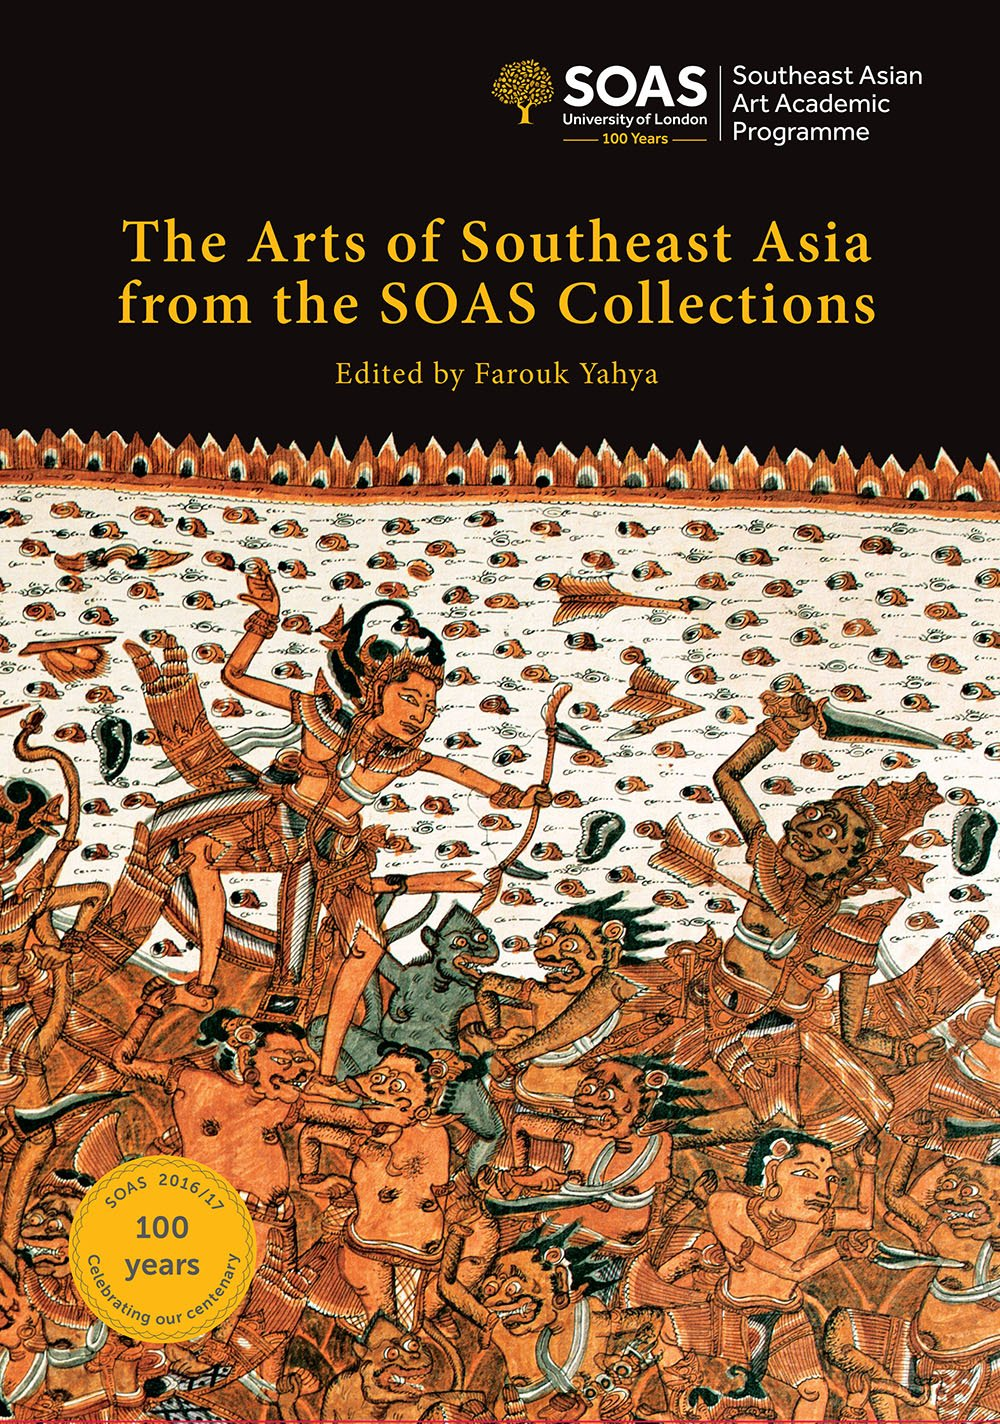 The Arts of Southeast Asia from the SOAS Collections pdf